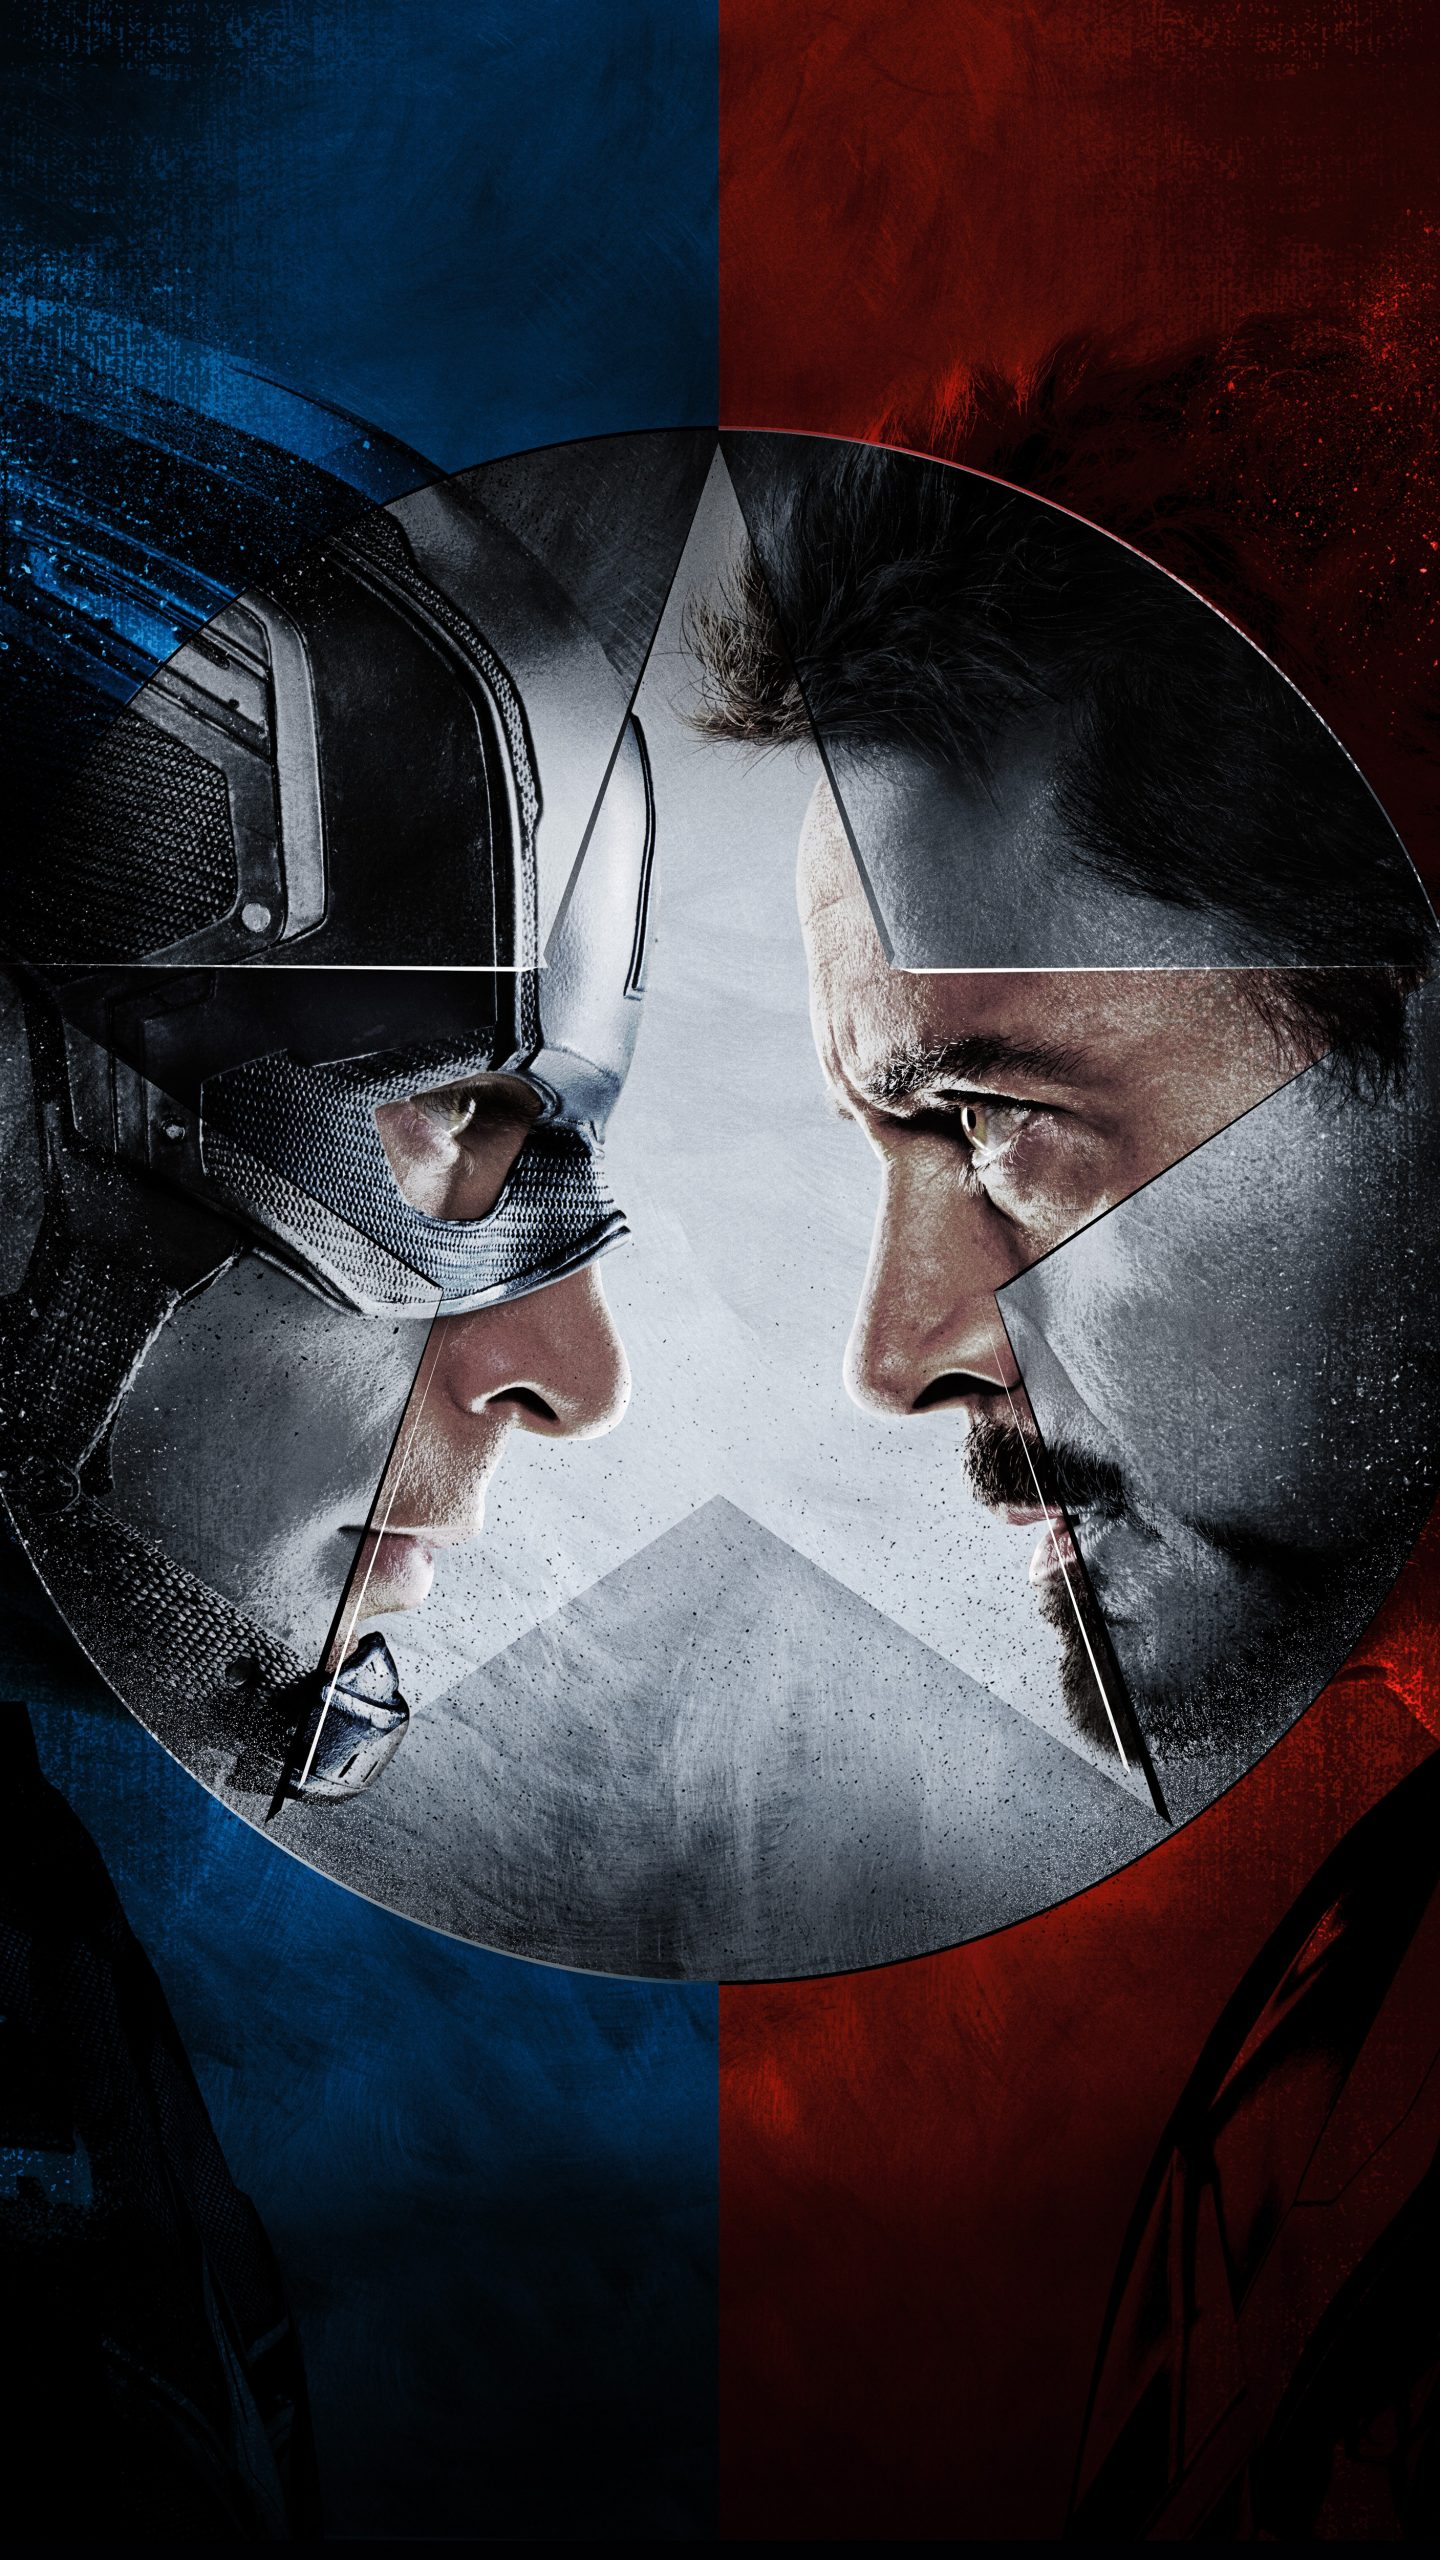 Captain America Vs Iron Man Civil War 4k Wallpaper Best Wallpapers